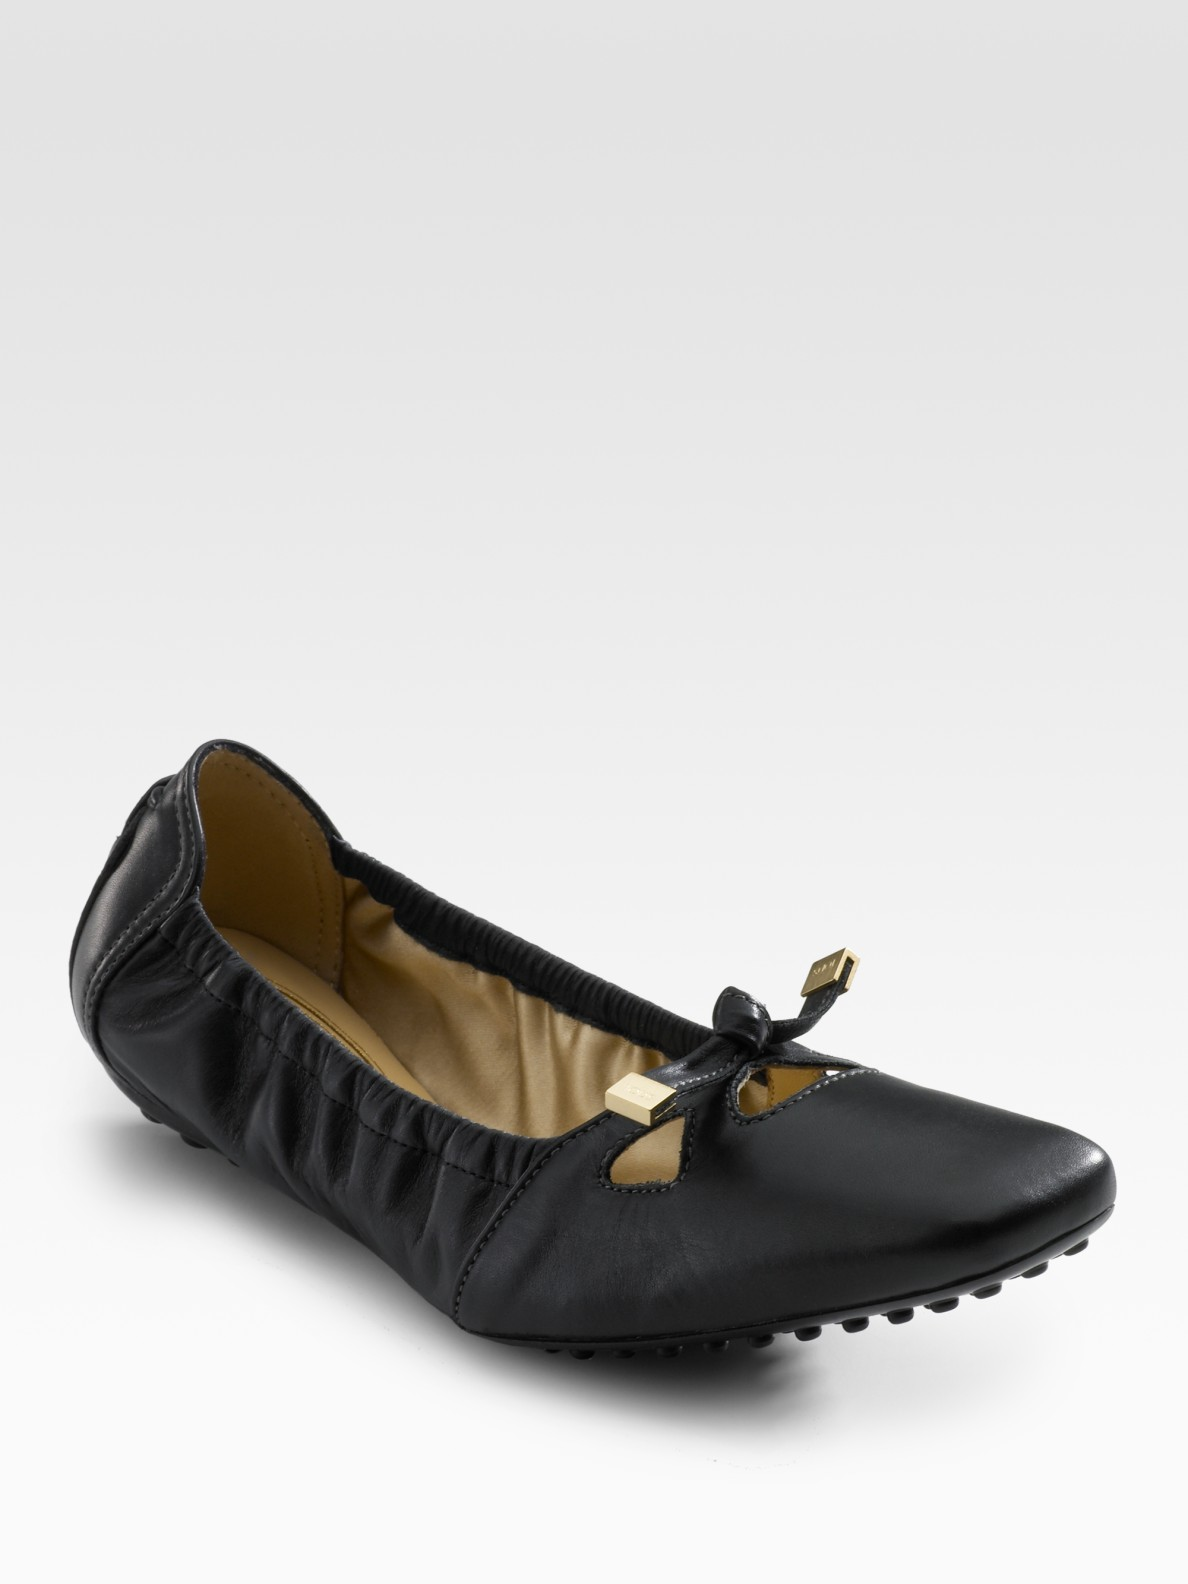 02cba1c8ff Tod's Degas Leather Ballet Flats in Black - Lyst